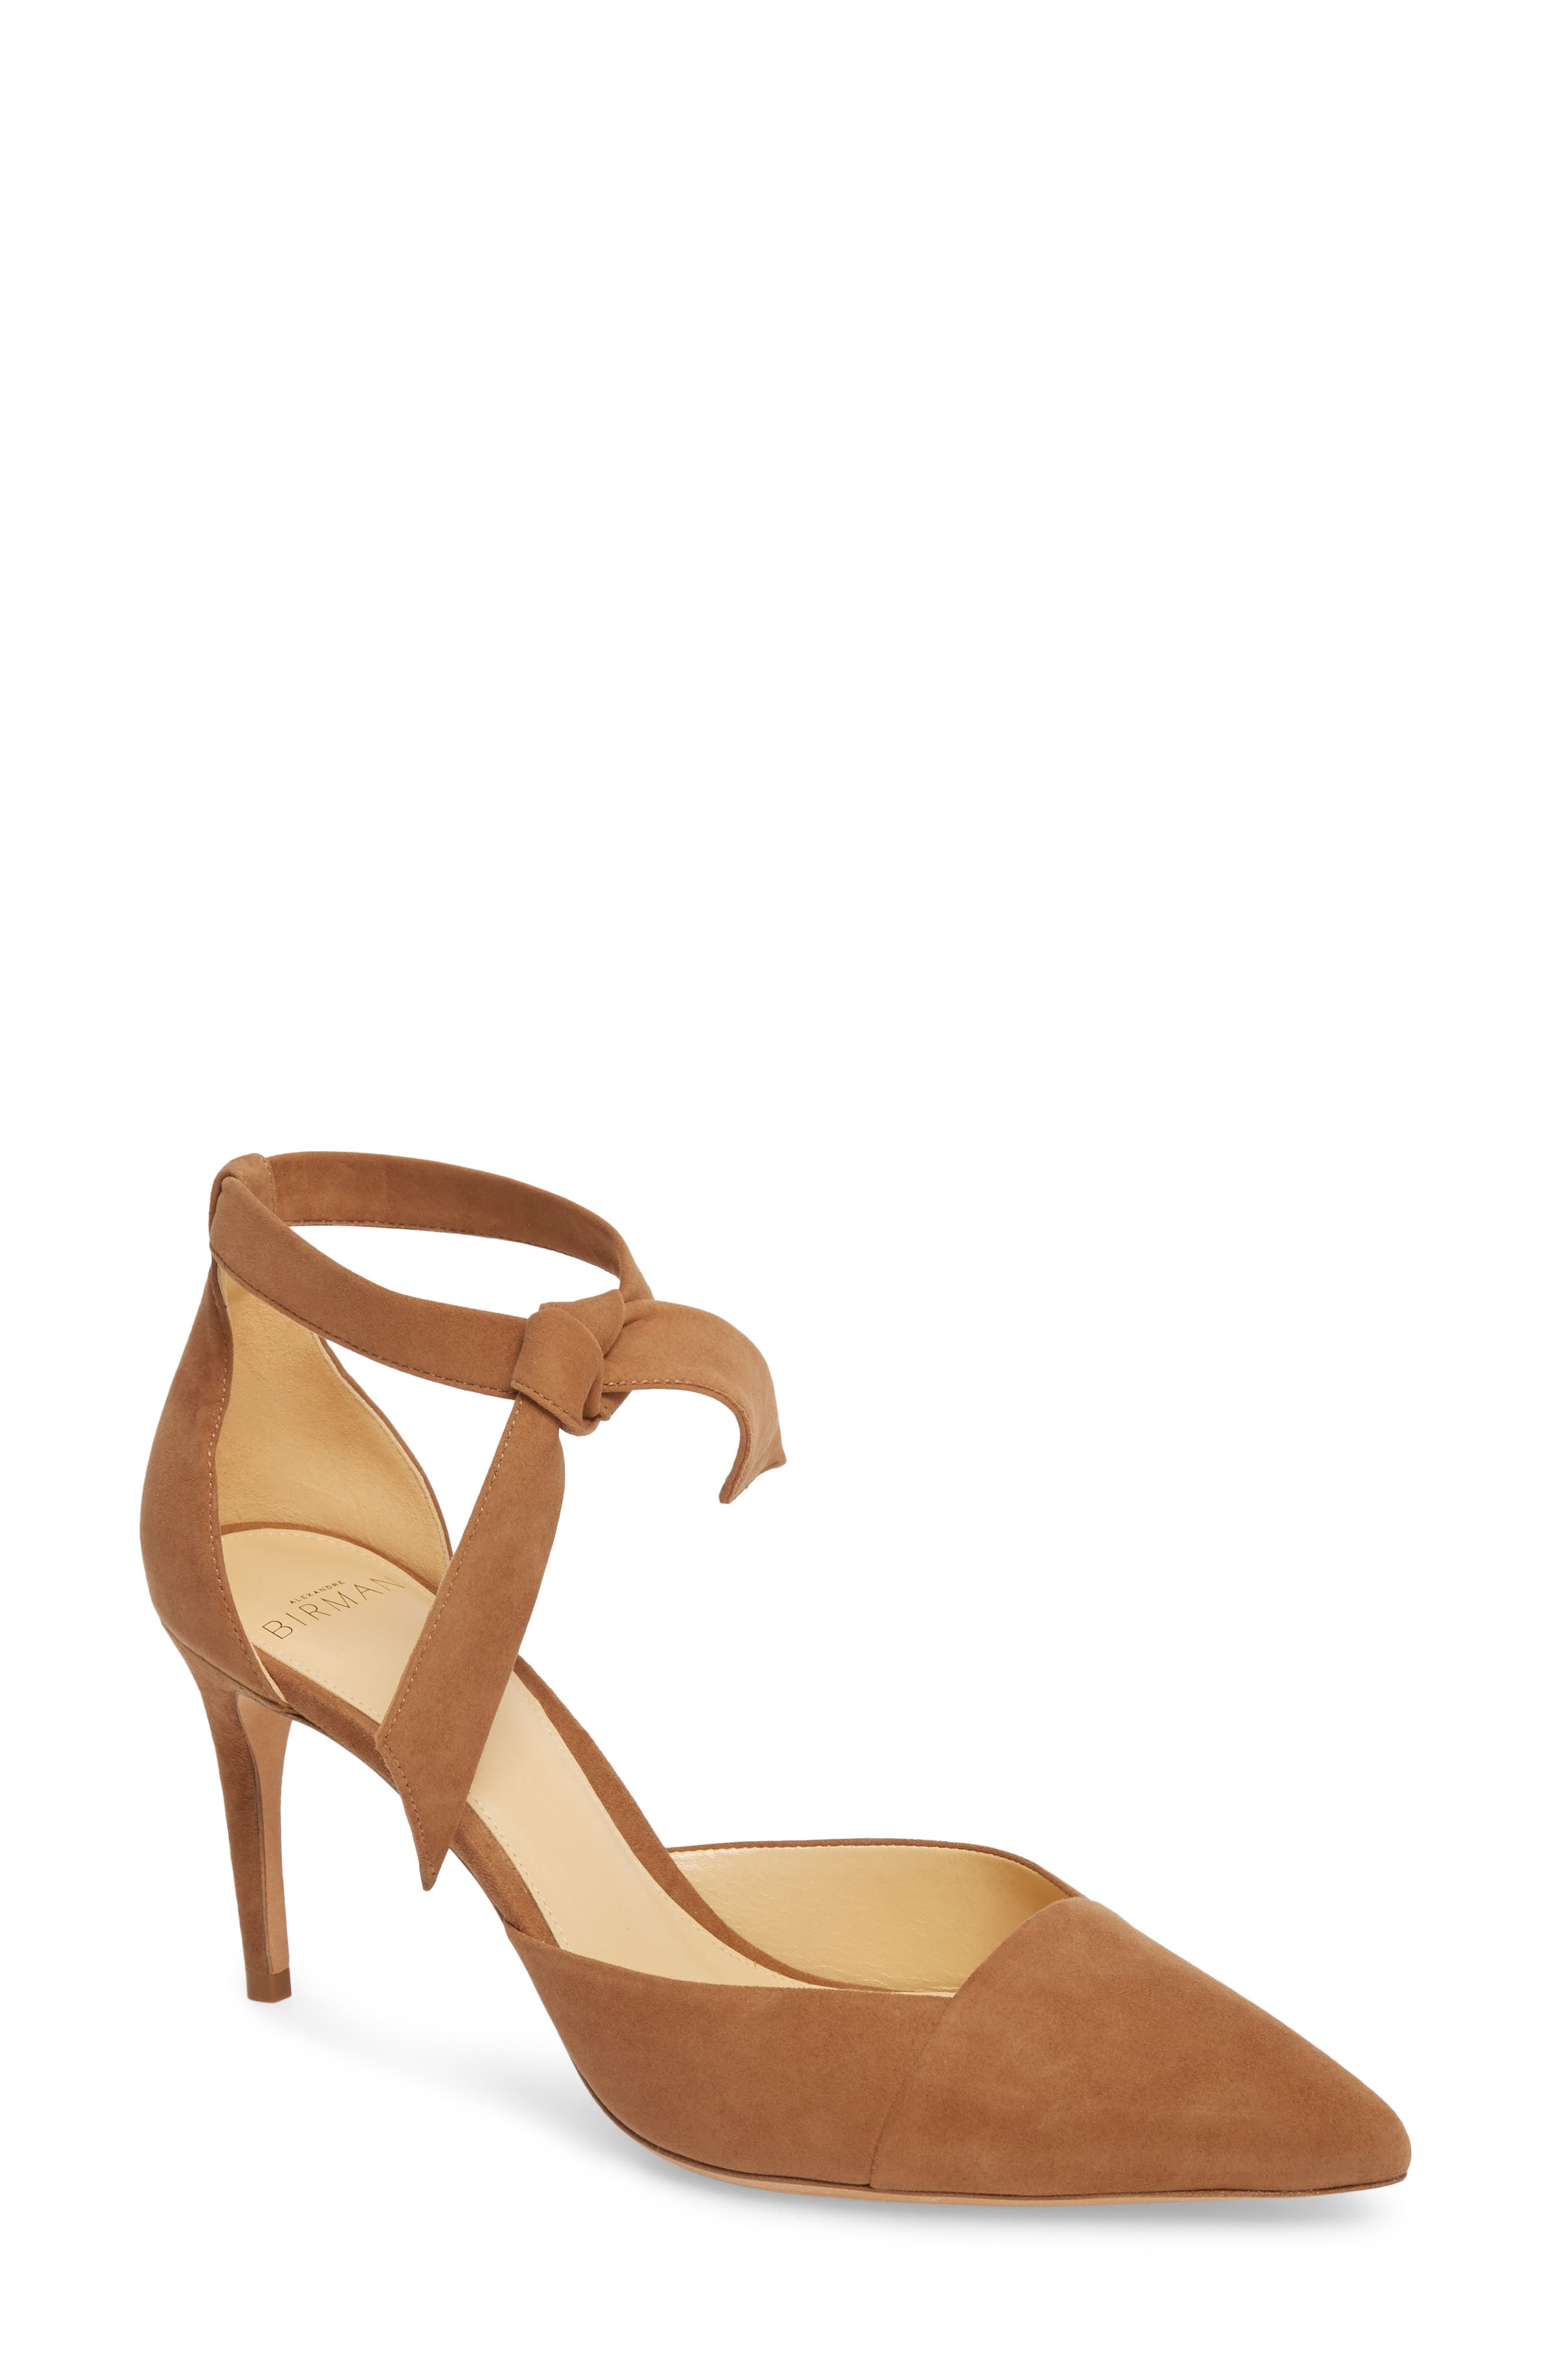 Azalea Tie Strap Pump,                             Main thumbnail 1, color,                             LIGHT BEIGE